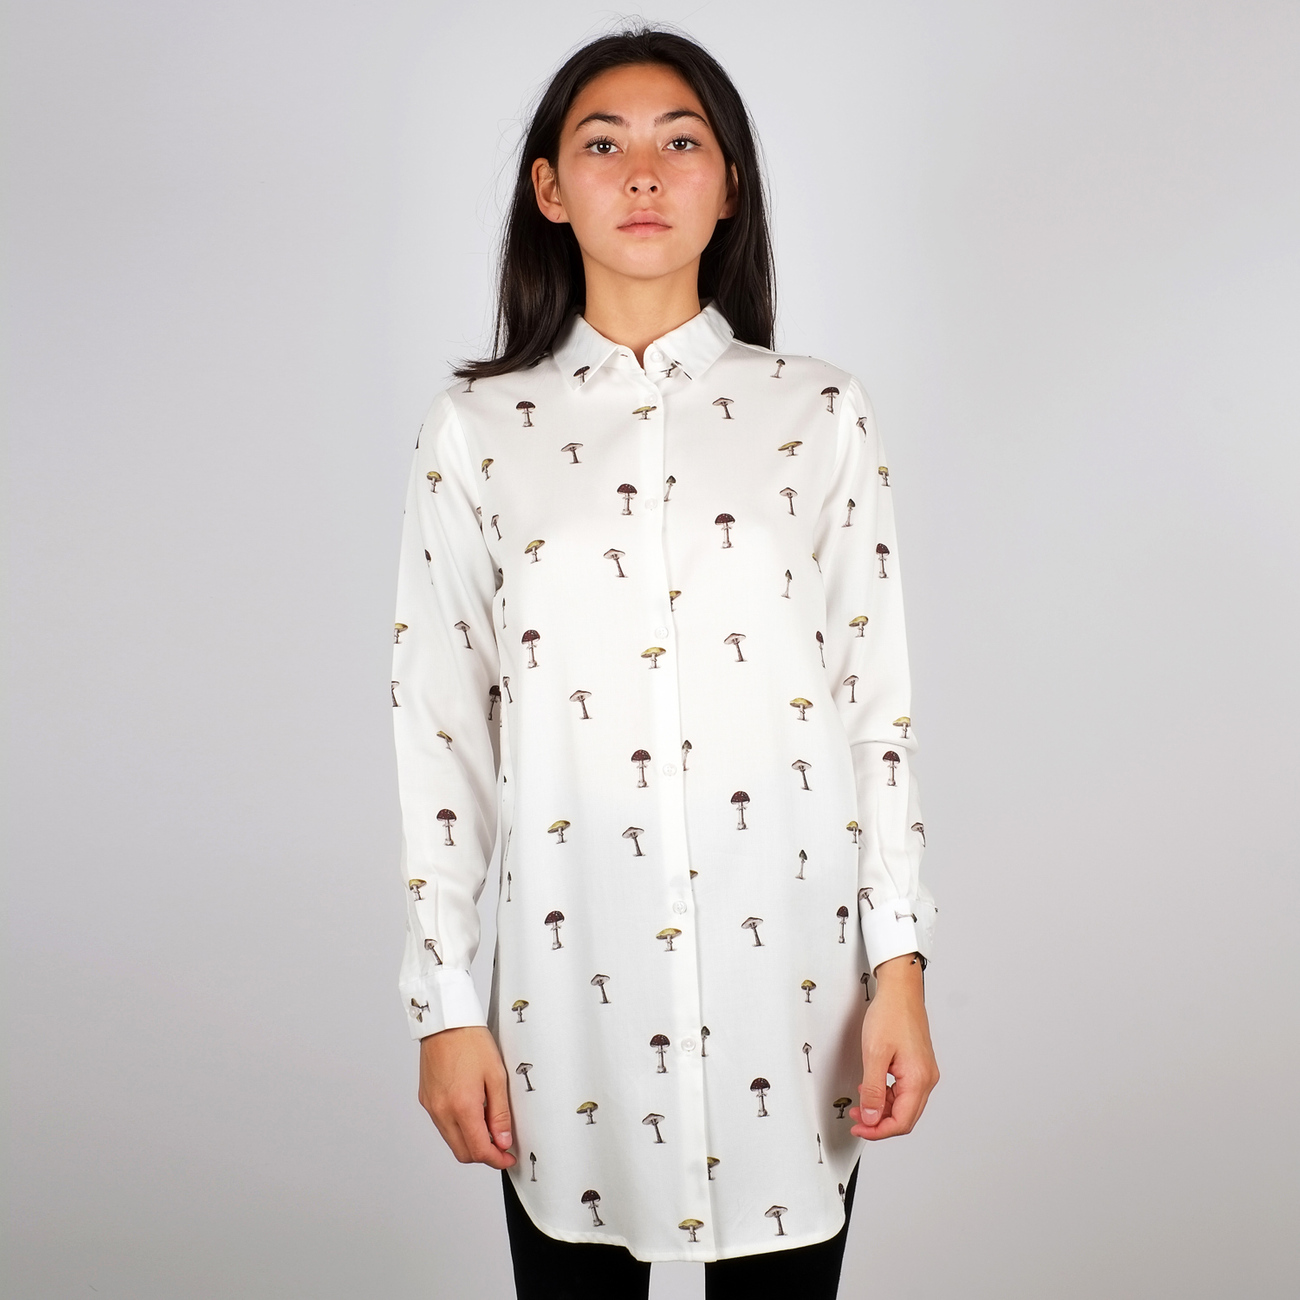 Shirt Fredericia Mushrooms